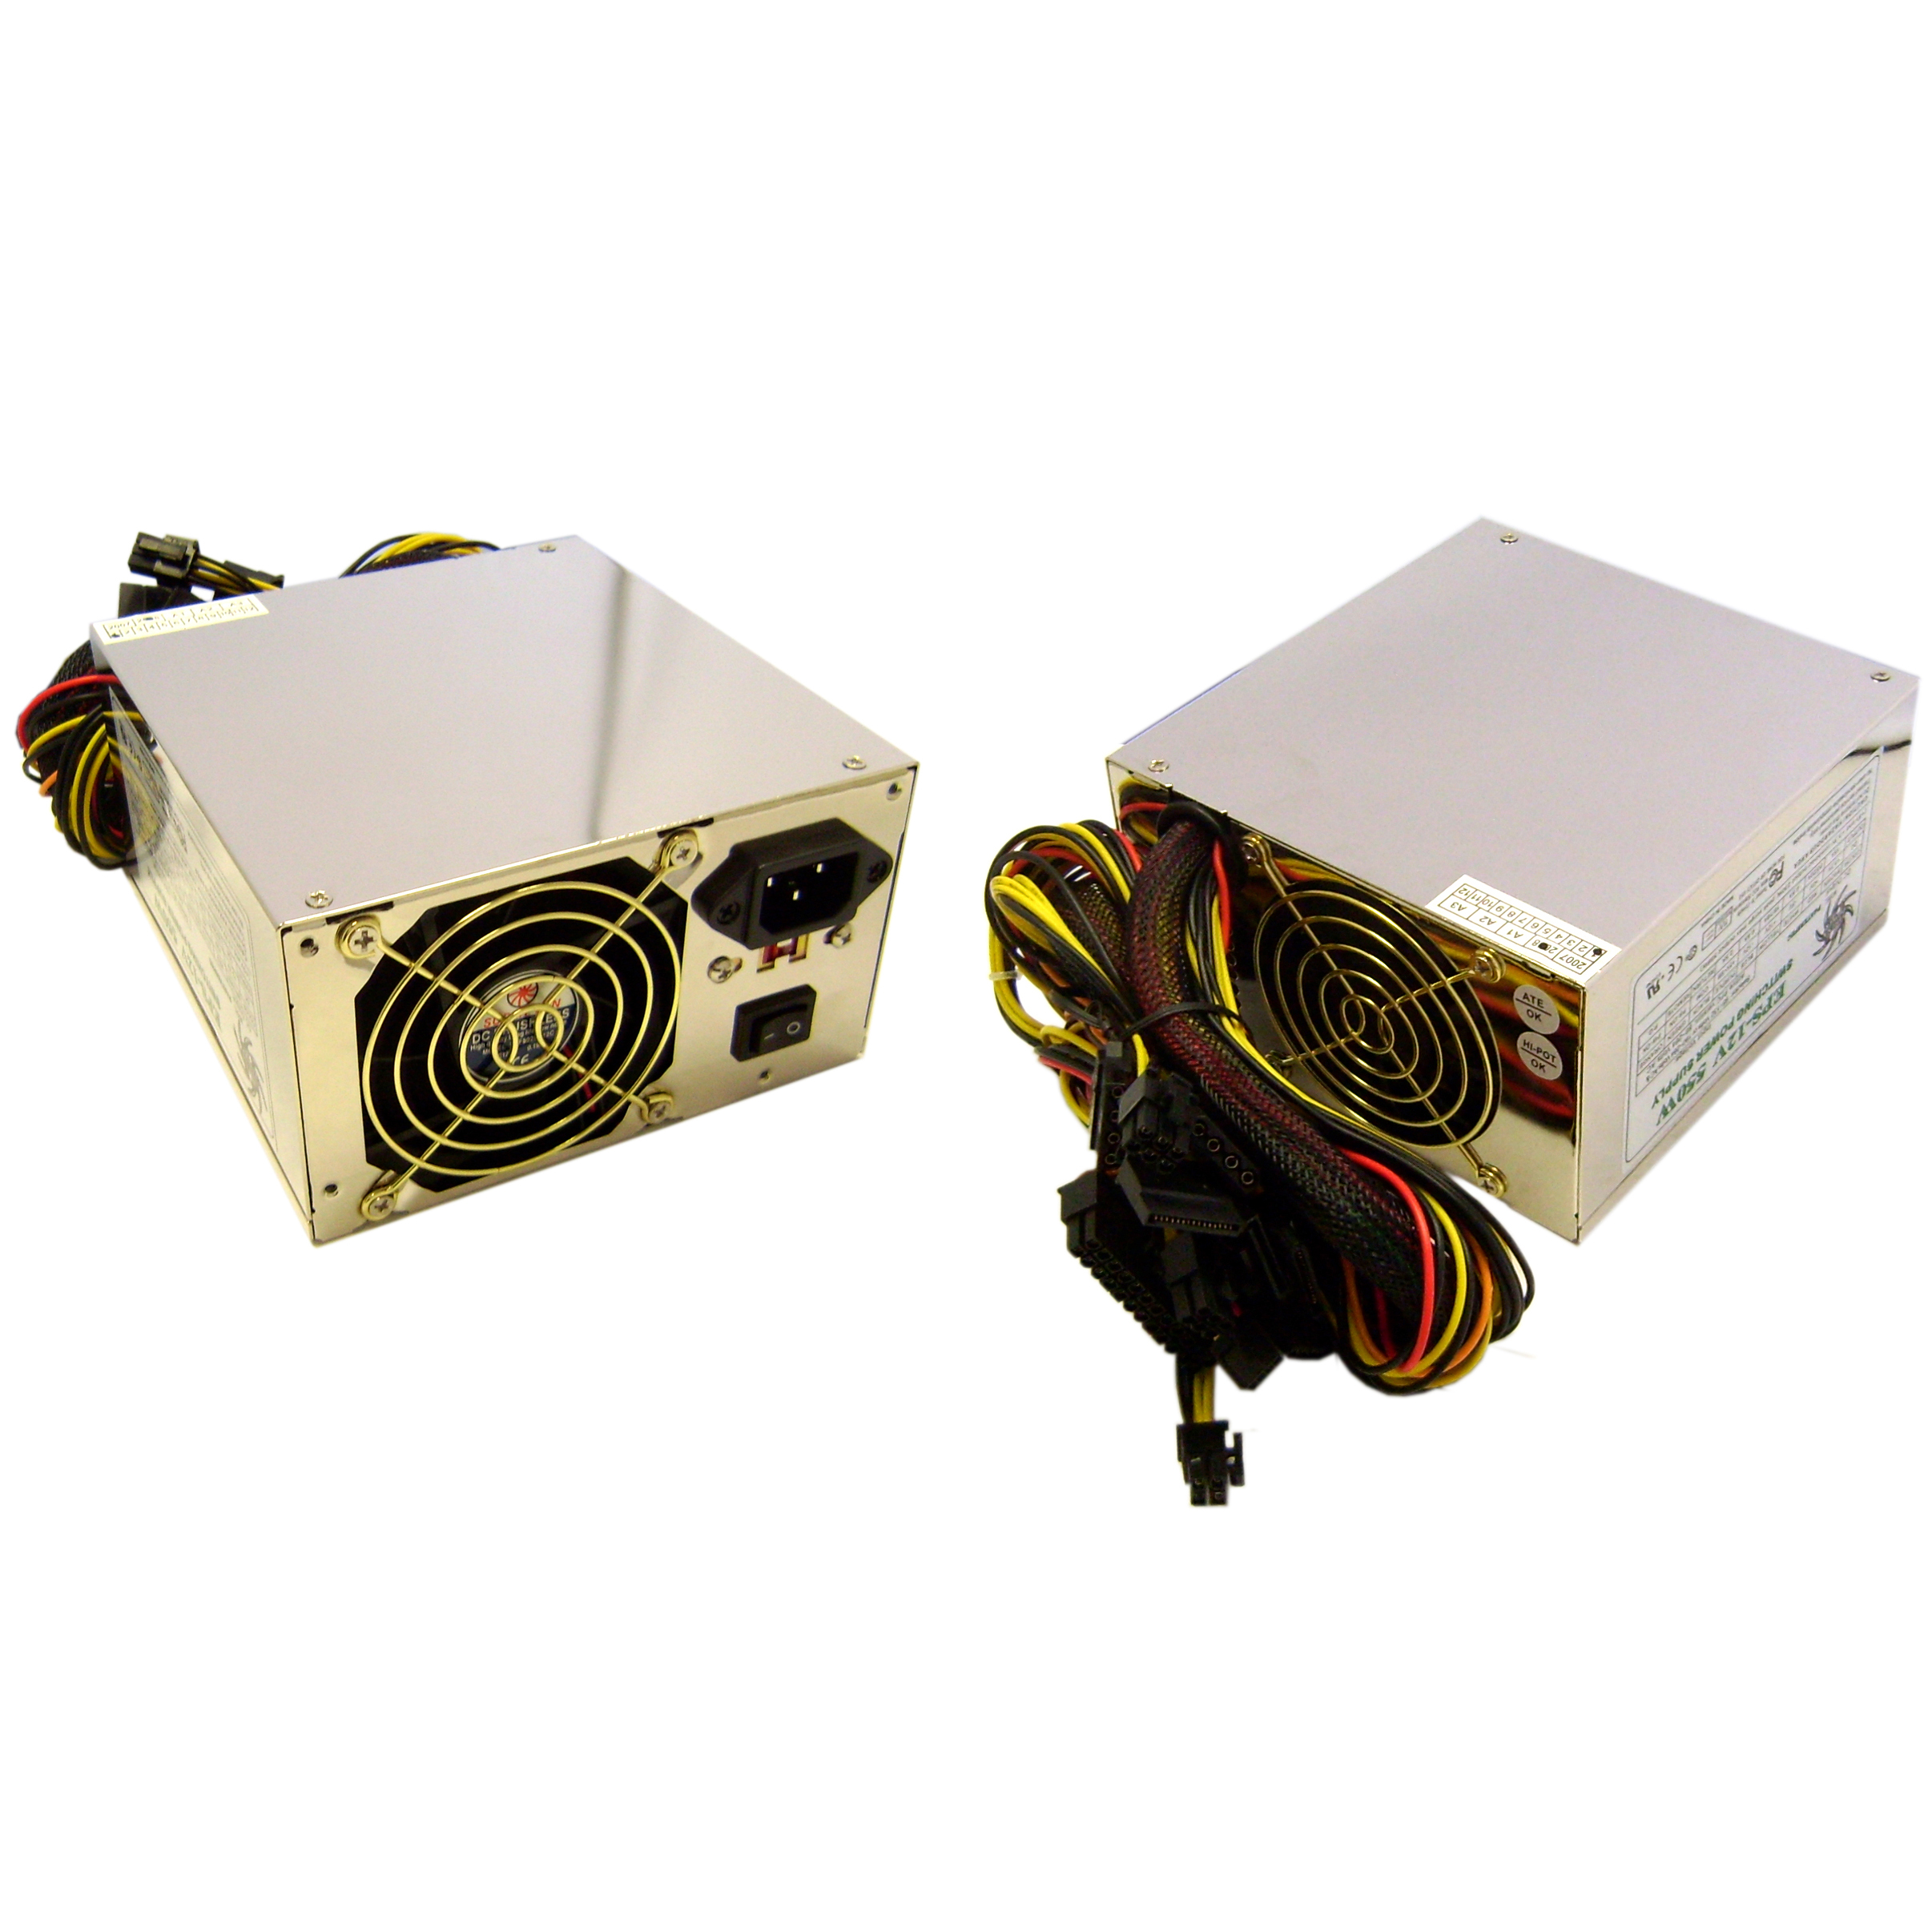 Computer/PC Power Supply Switch ATX 420 Watt, Dual Fan